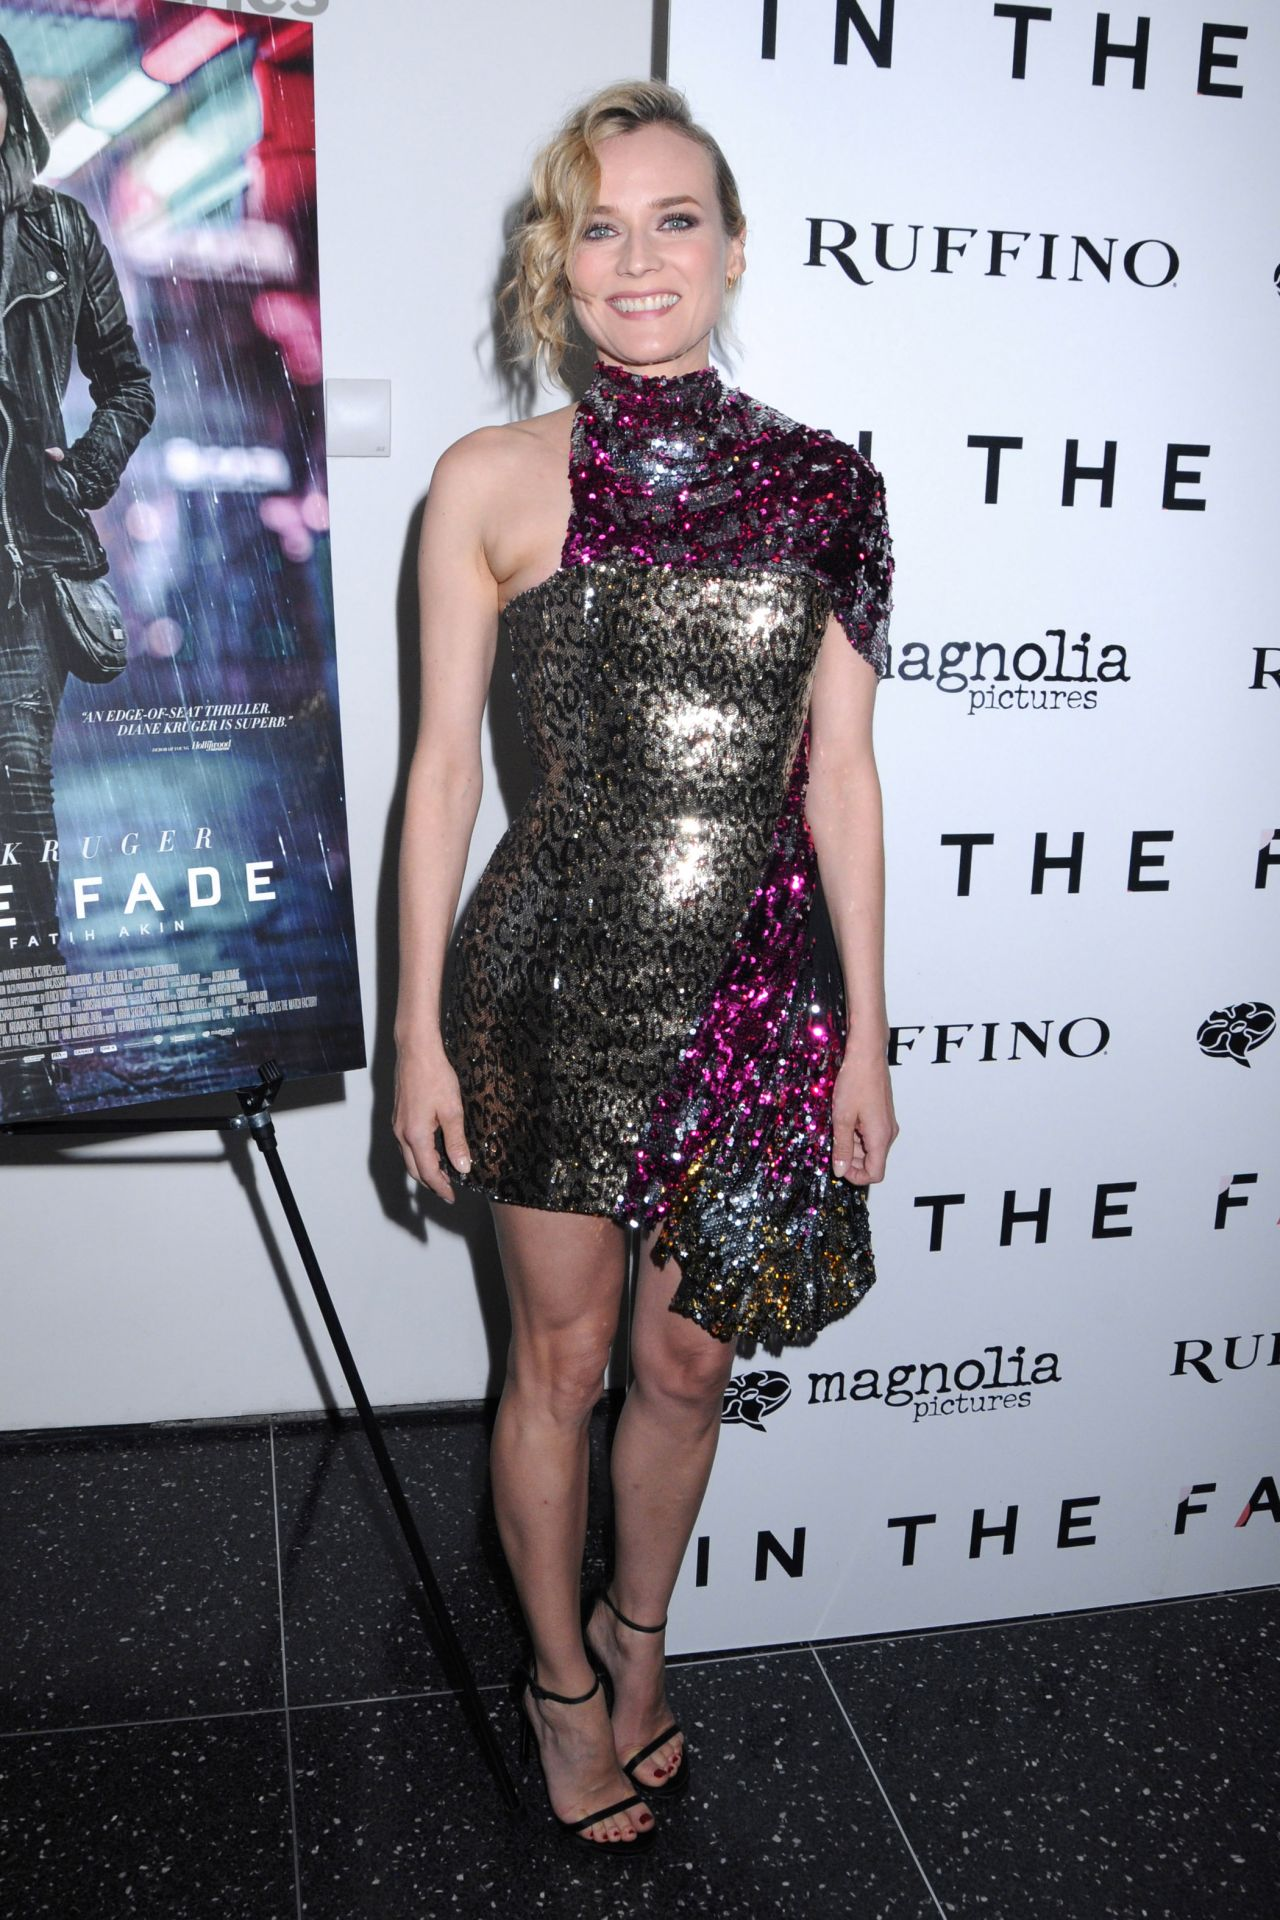 http://celebmafia.com/wp-content/uploads/2017/12/diane-kruger-in-the-fade-premiere-in-new-york-2.jpg